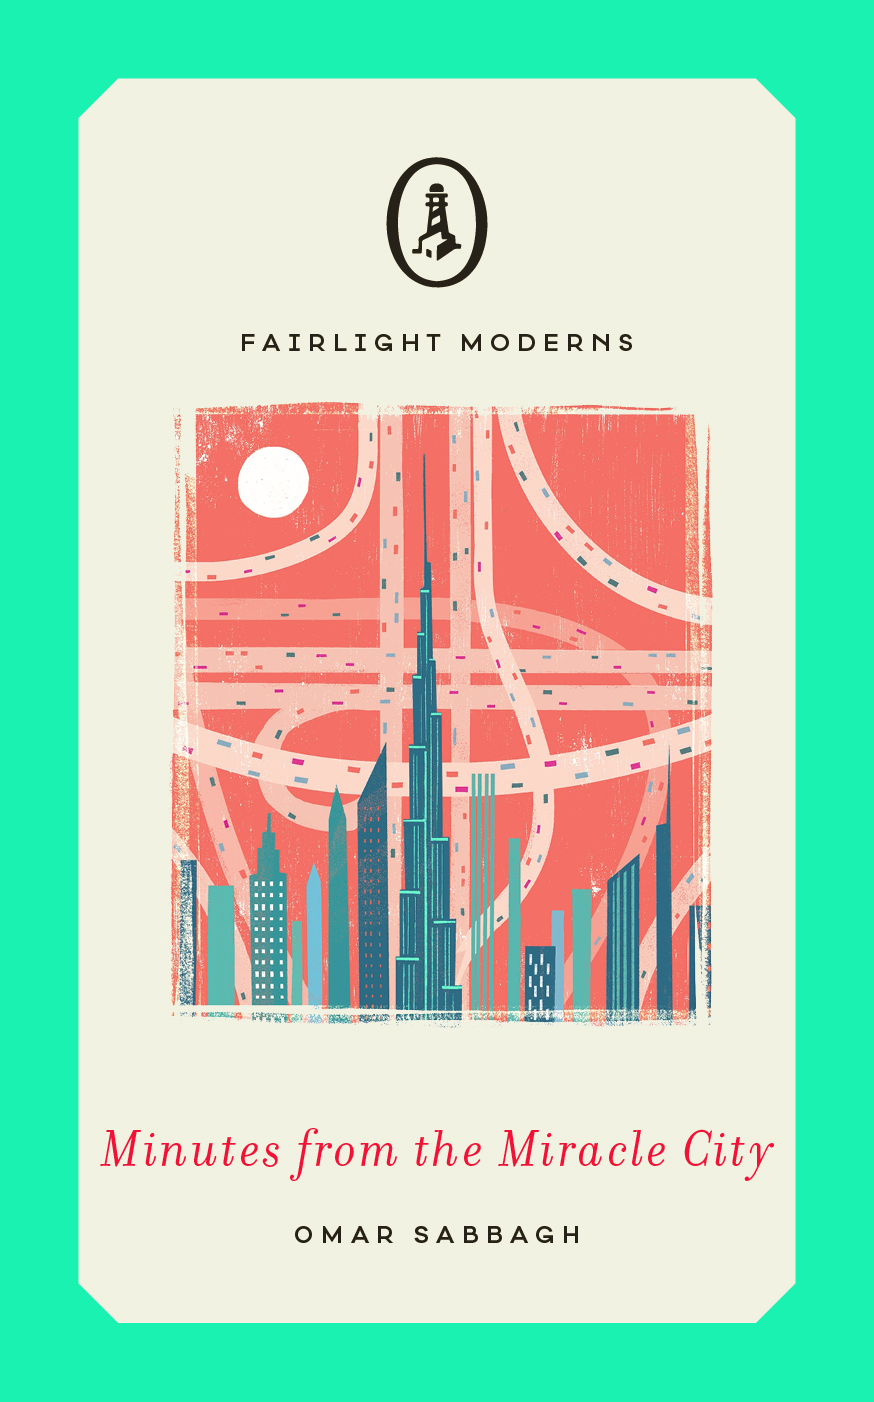 June 2019: Minutes from the Miracle City by Omar Shabbagh (Fairlight)